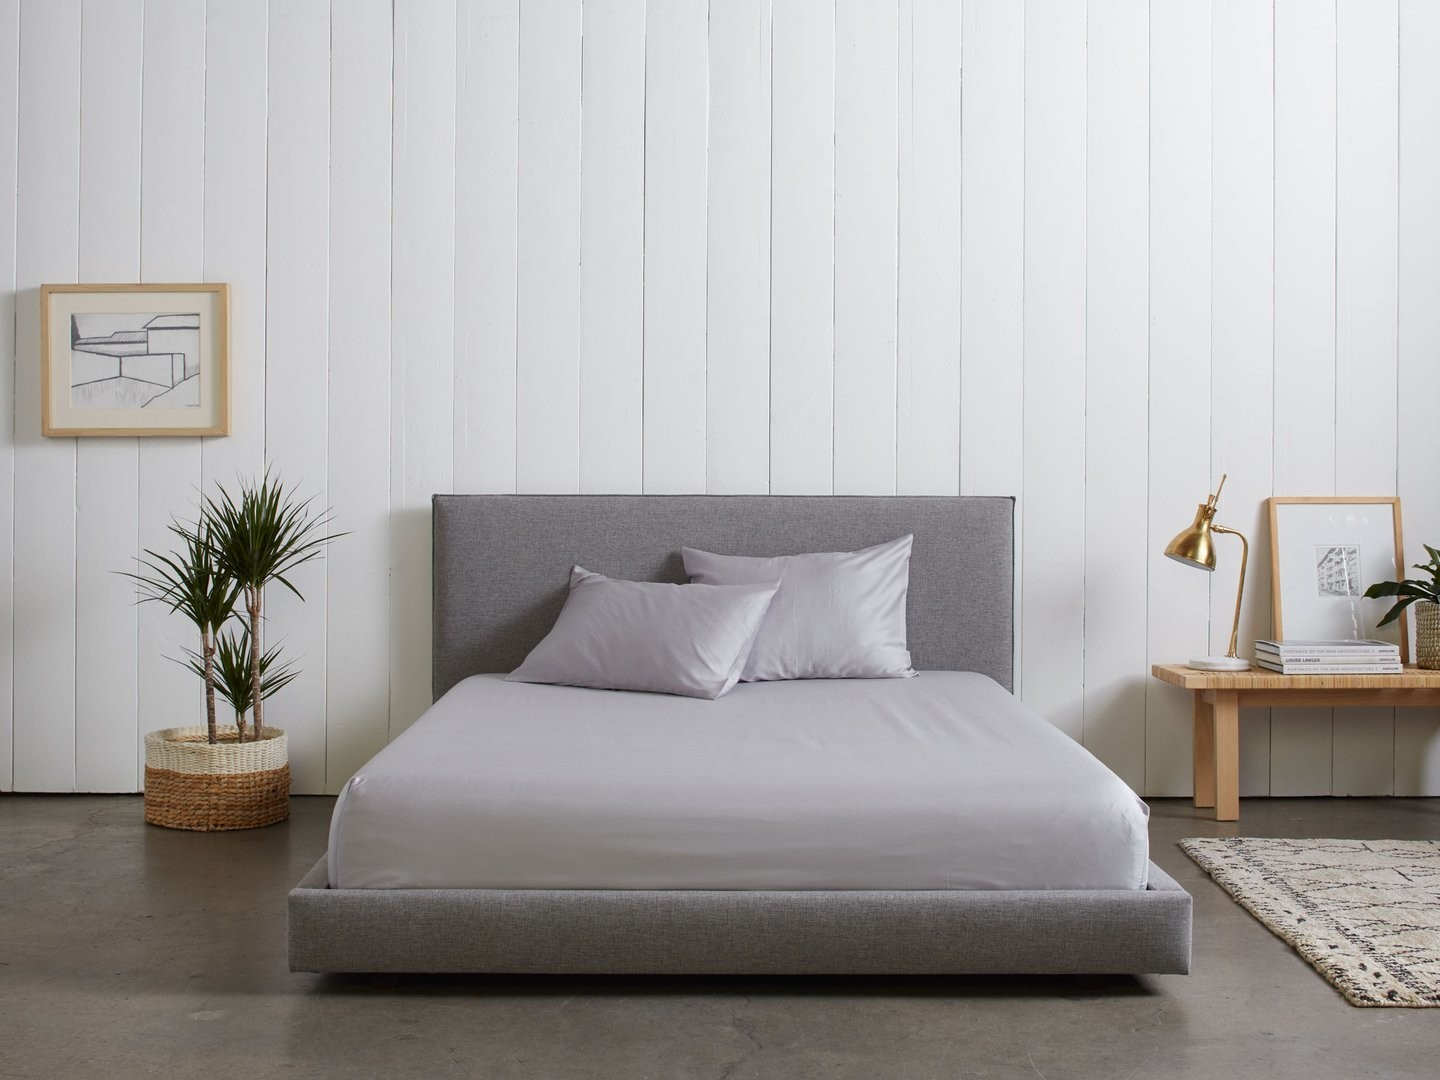 Best Bed 2019 The Best Bed Sheets To Buy For 2019   See It Now   Lonny